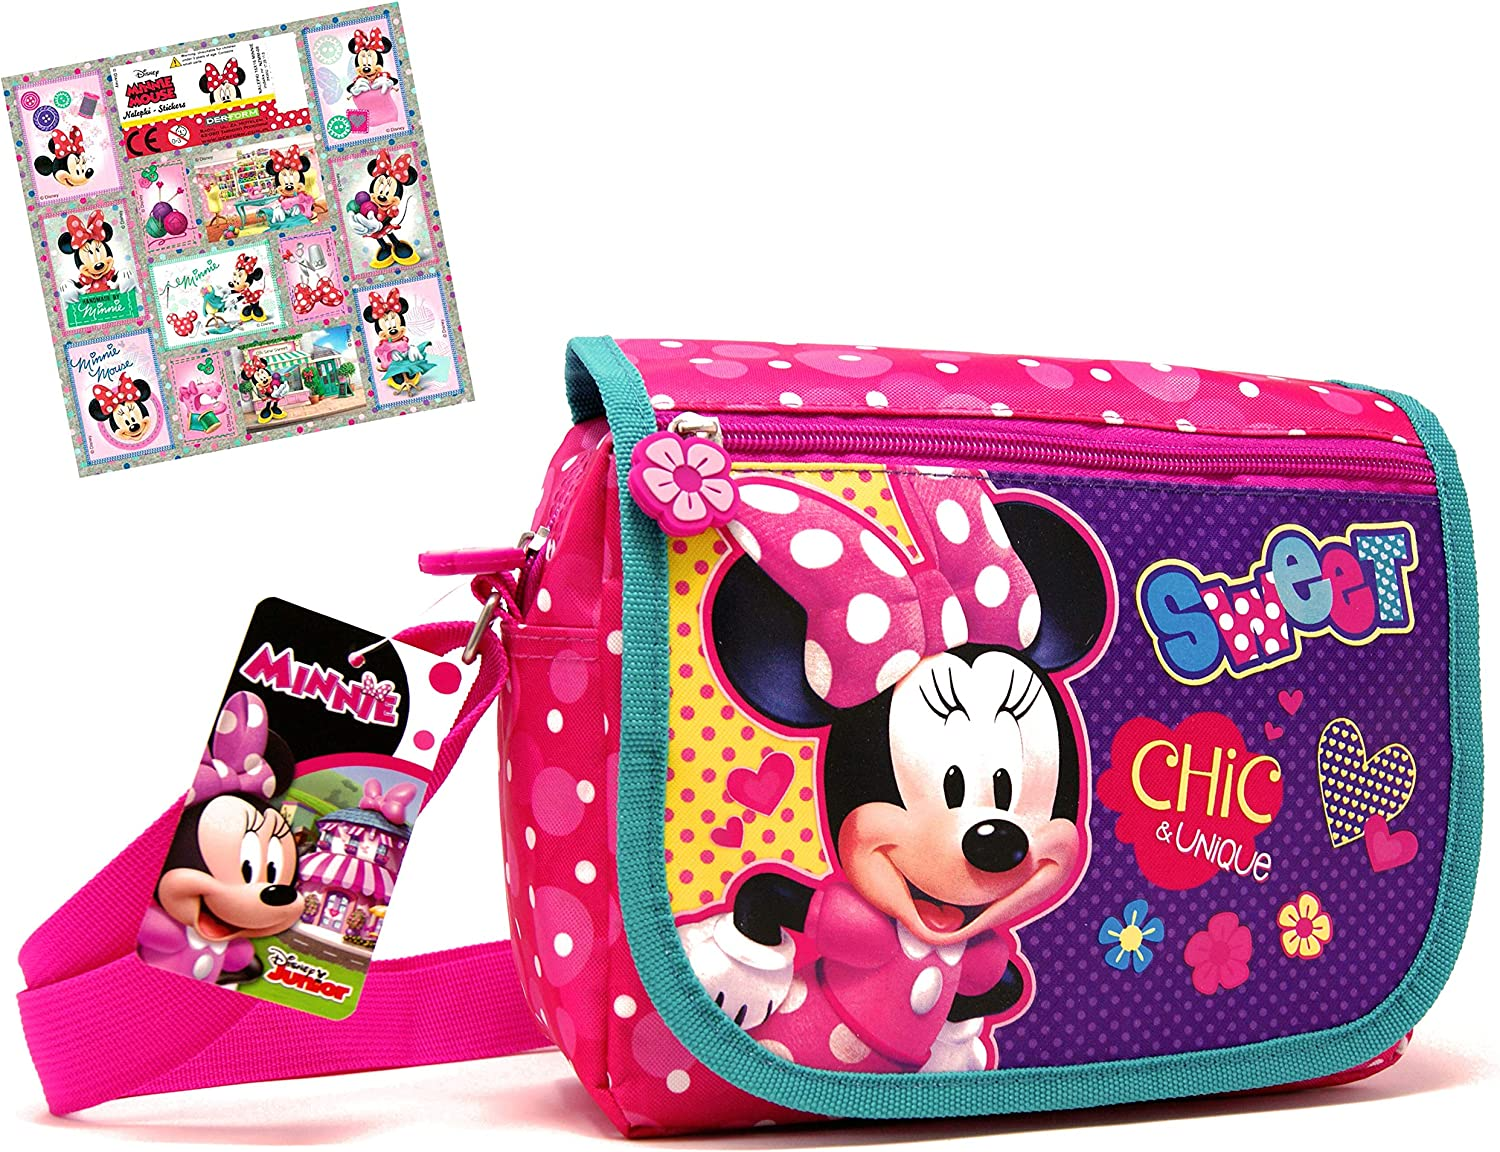 + 12 Stickers Childrens Bag//Shoulder Bag with Extra Zip Front Compartment 23 x 19 x 10 cm Super Childrens Bag Minnie Mouse 2 TLG